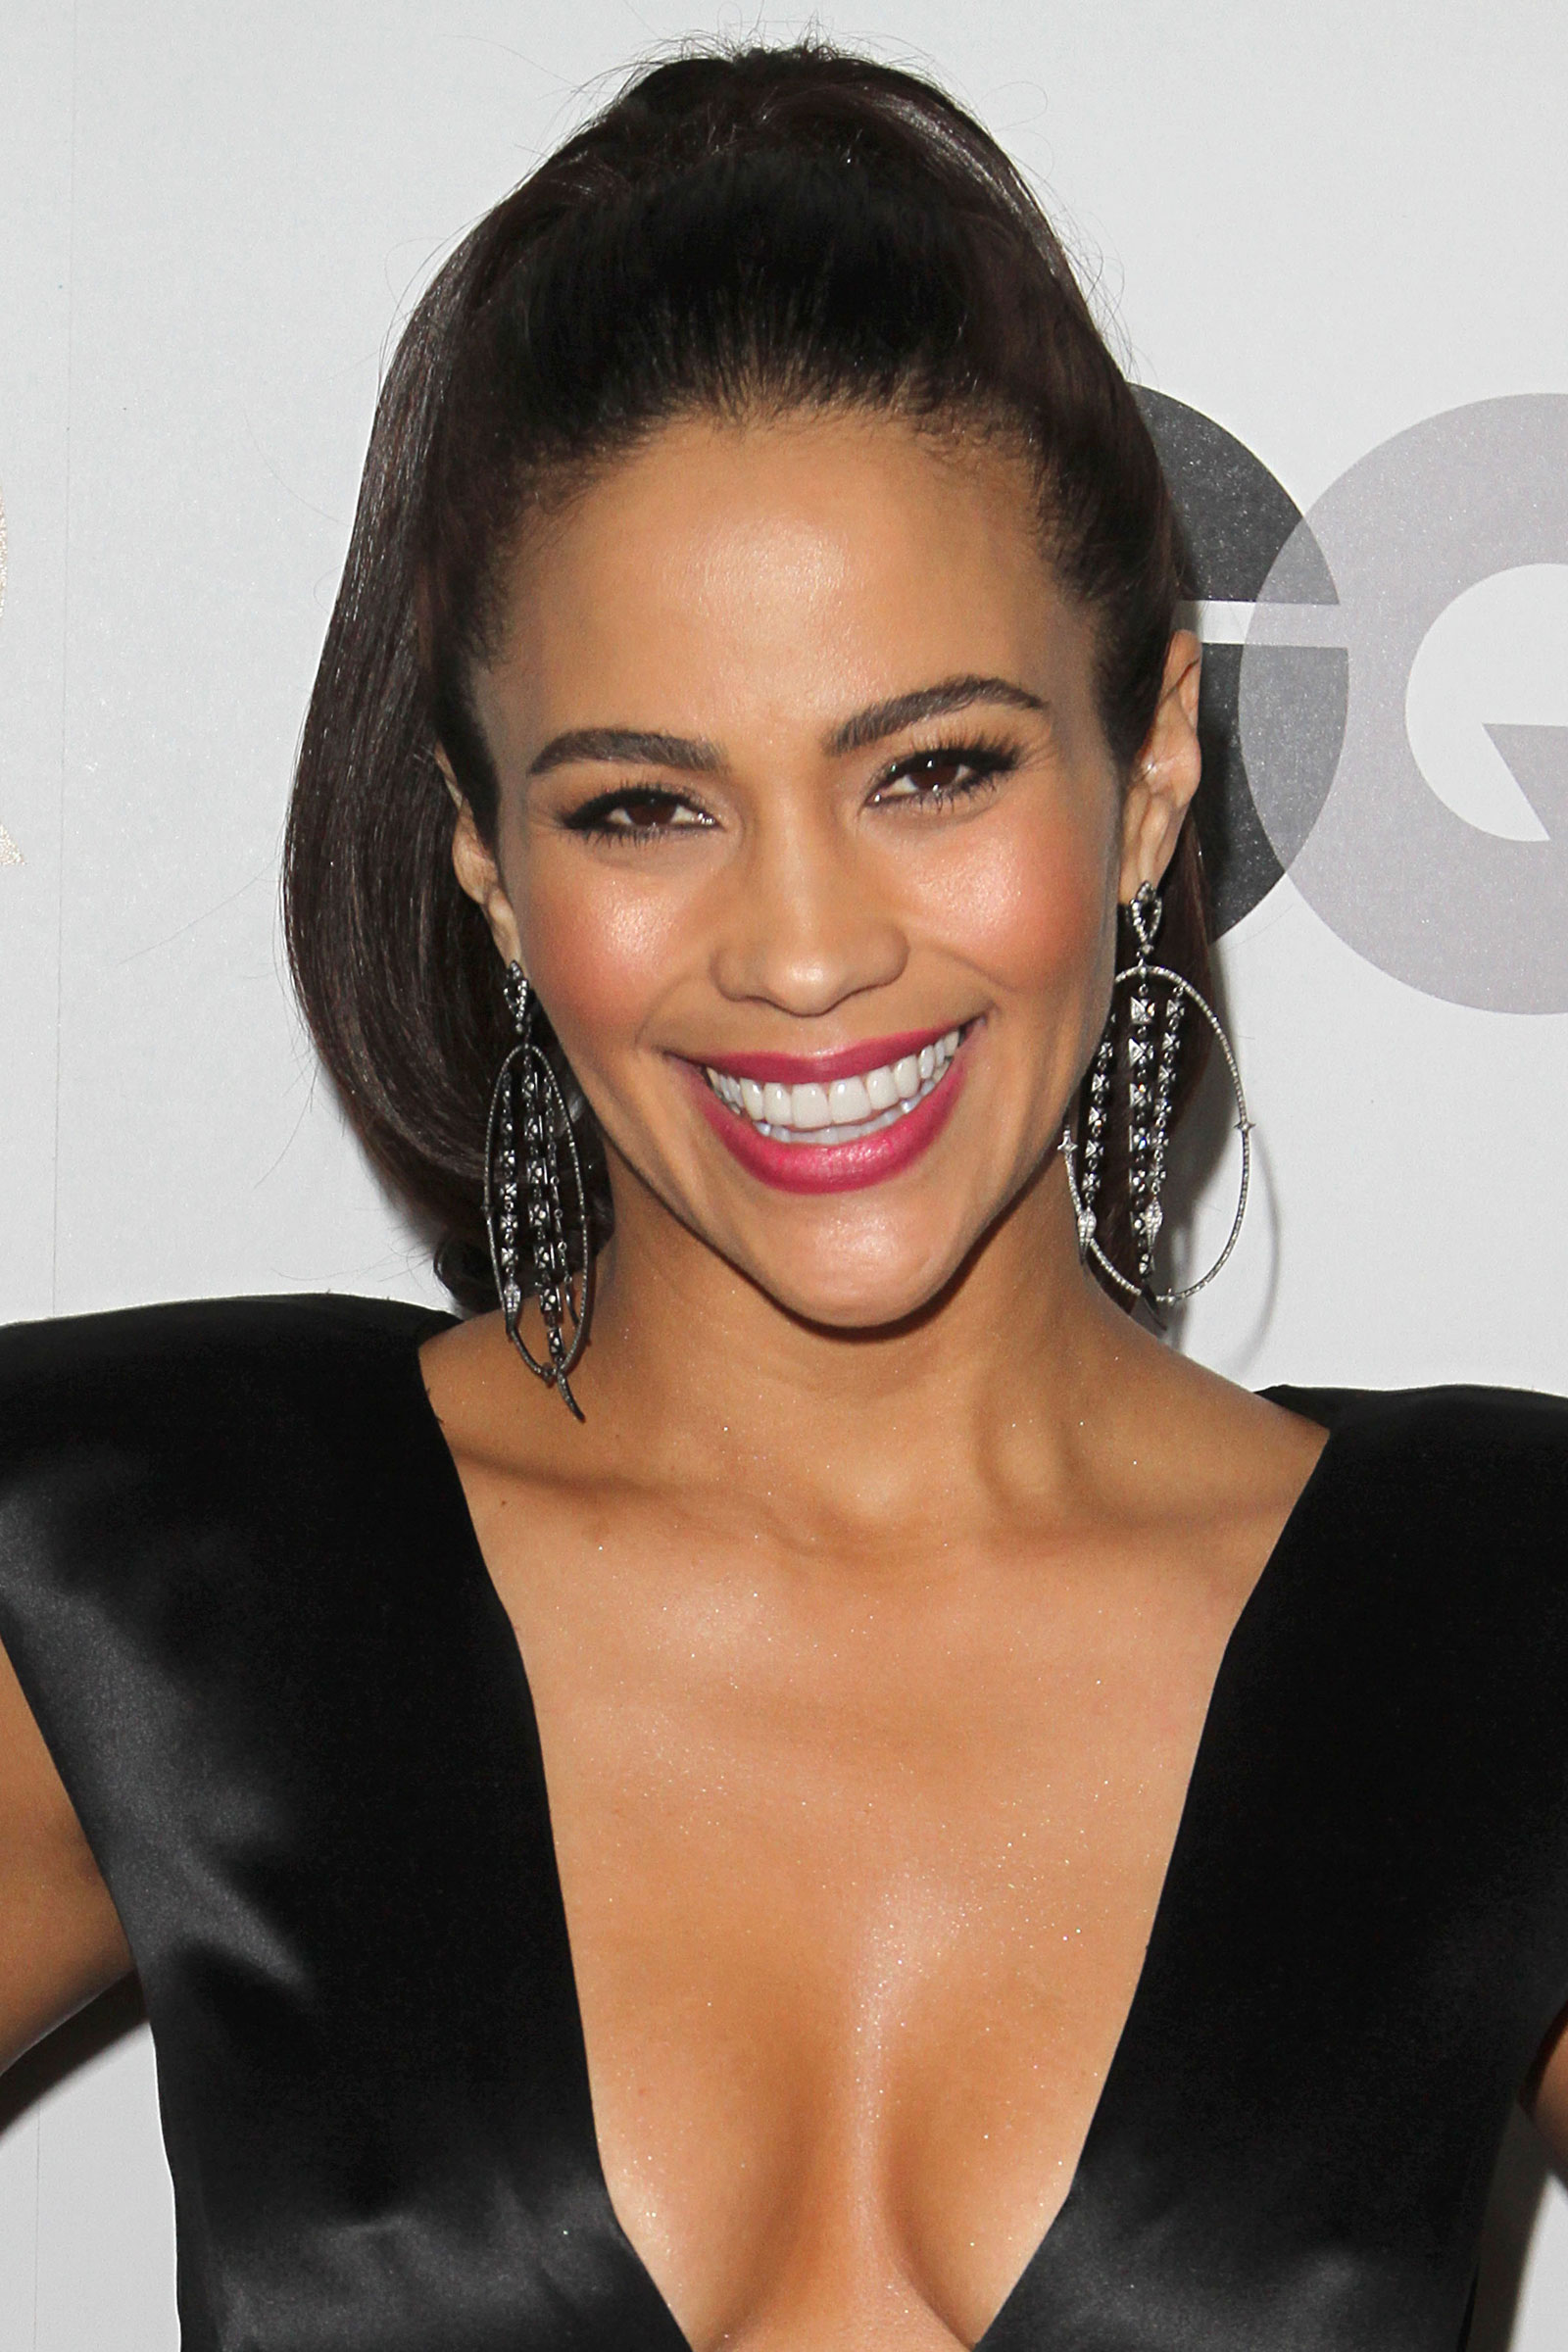 26 Hot Paula Patton Bikini Pictures - One of The Sexiest